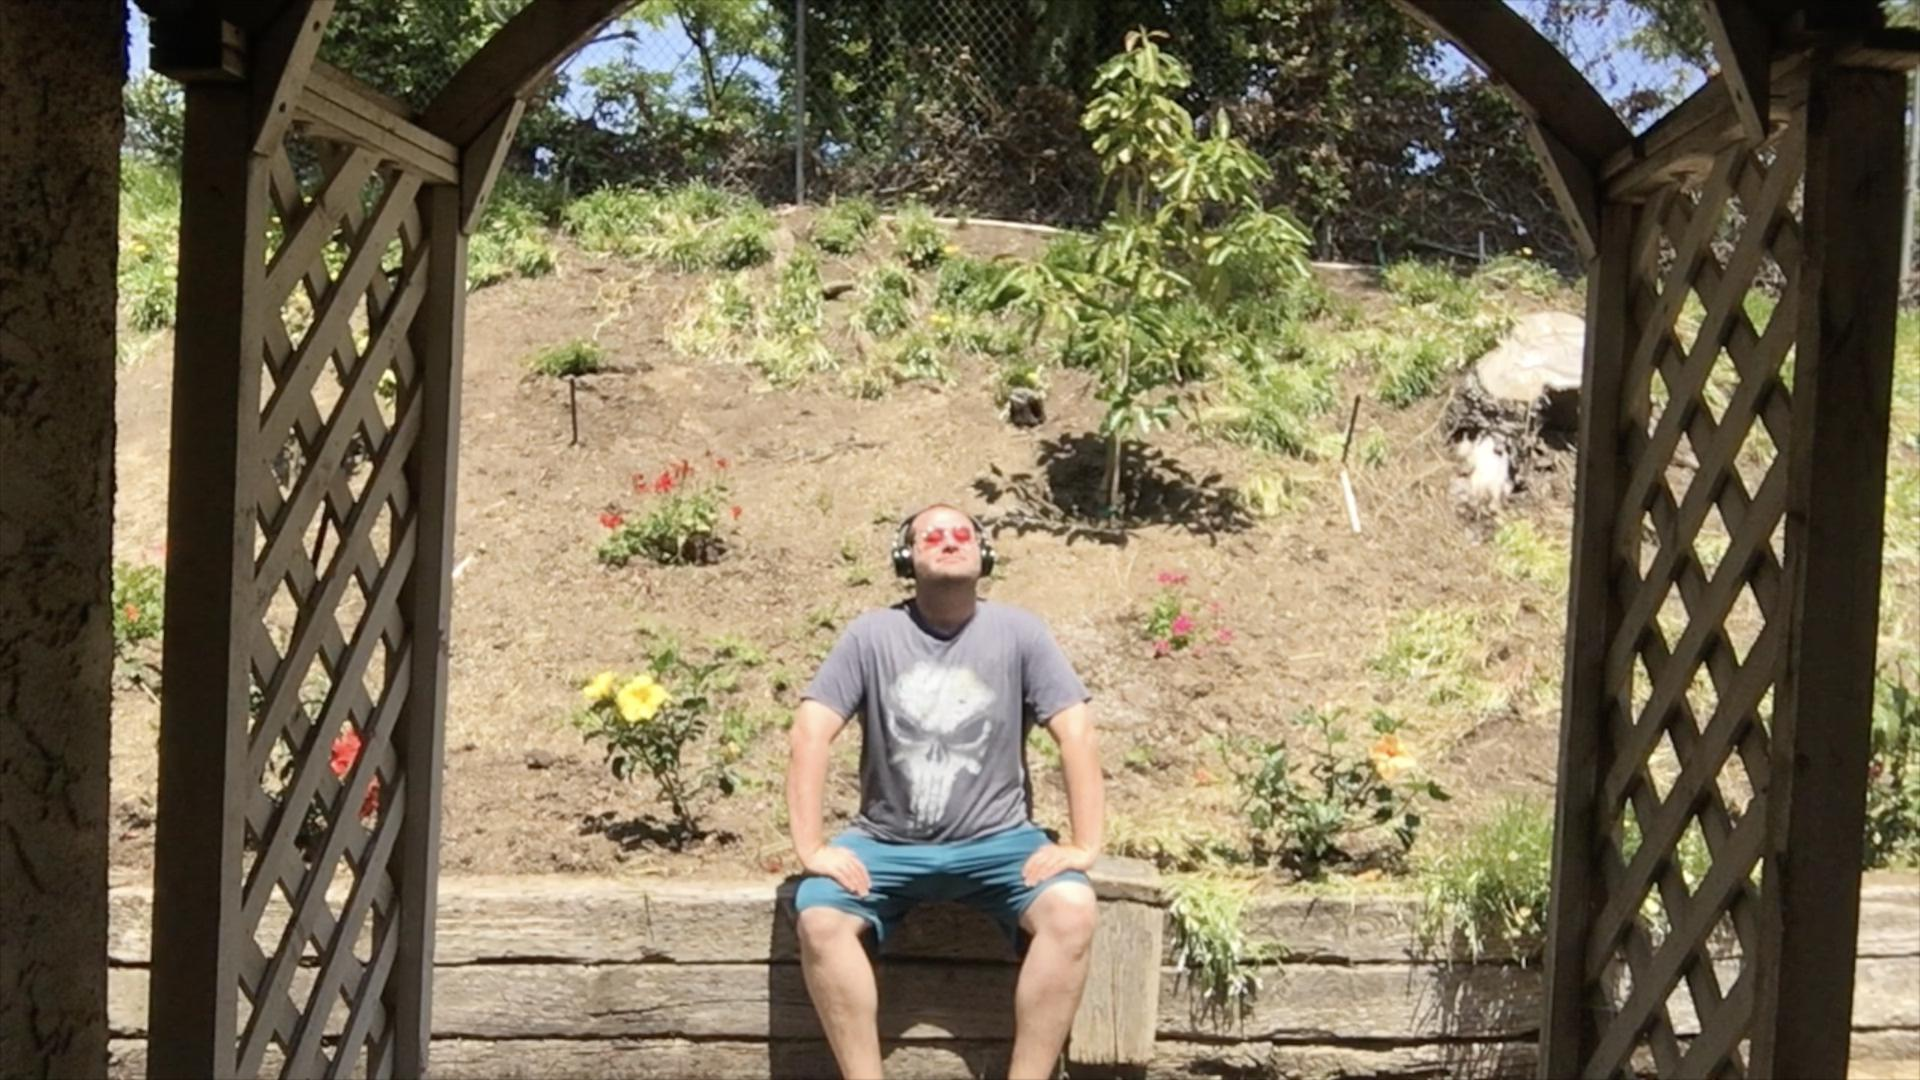 The Uncle and the Garden